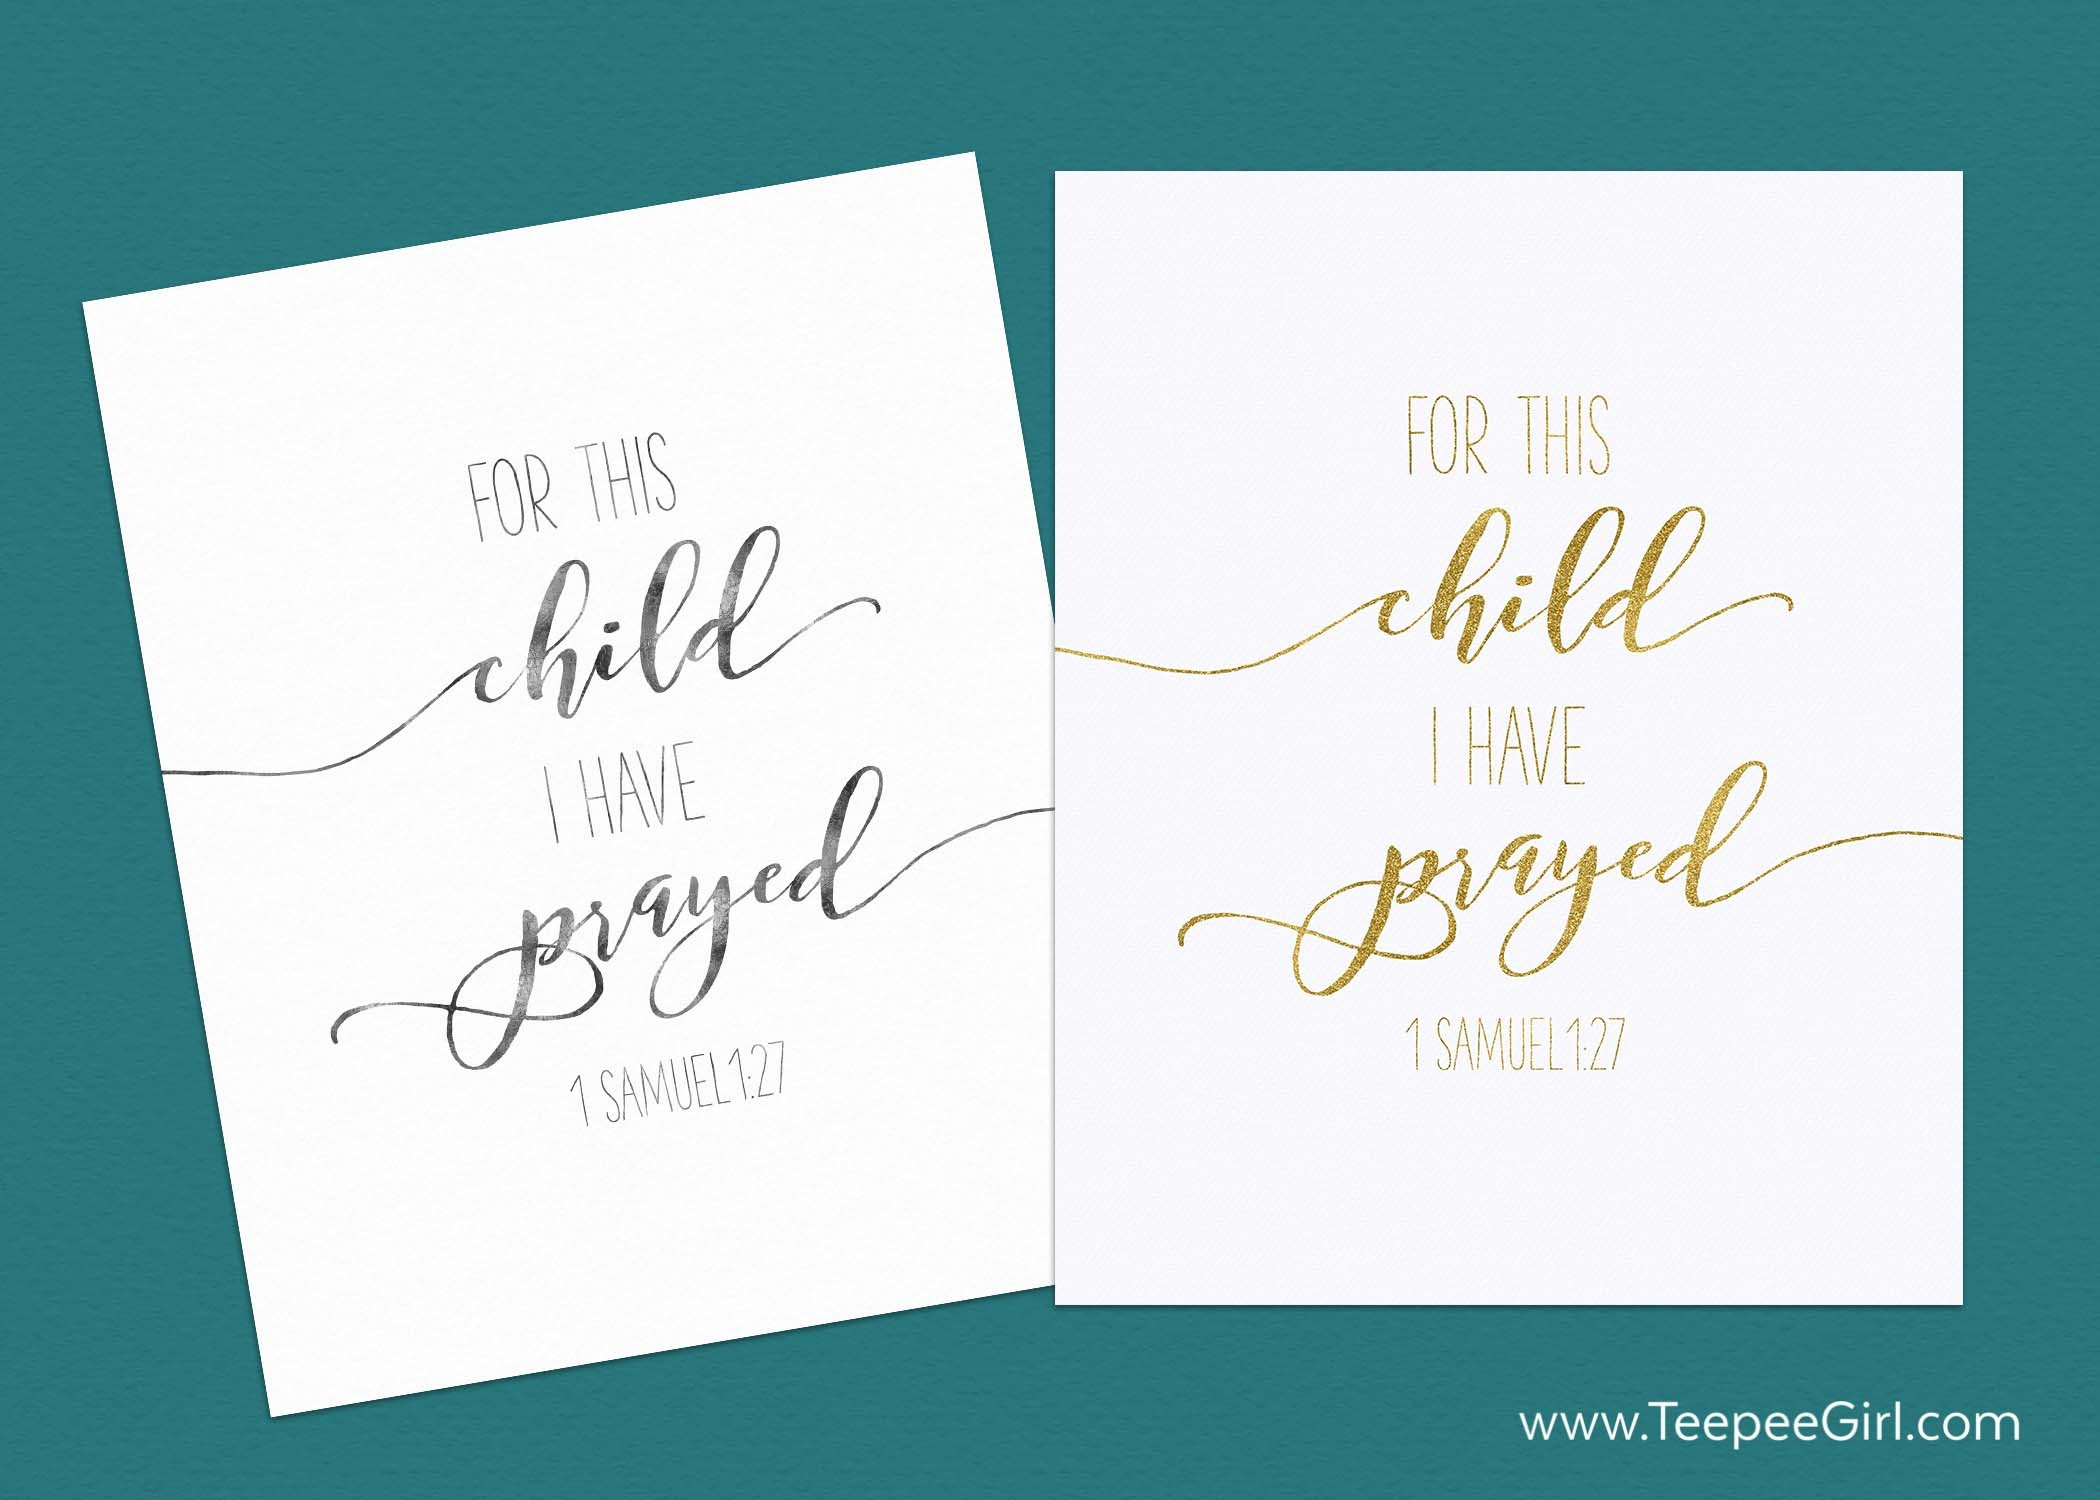 5 Unexpected Things I Learned Through Adoption (+ A Free Printable - For This Child We Have Prayed Free Printable